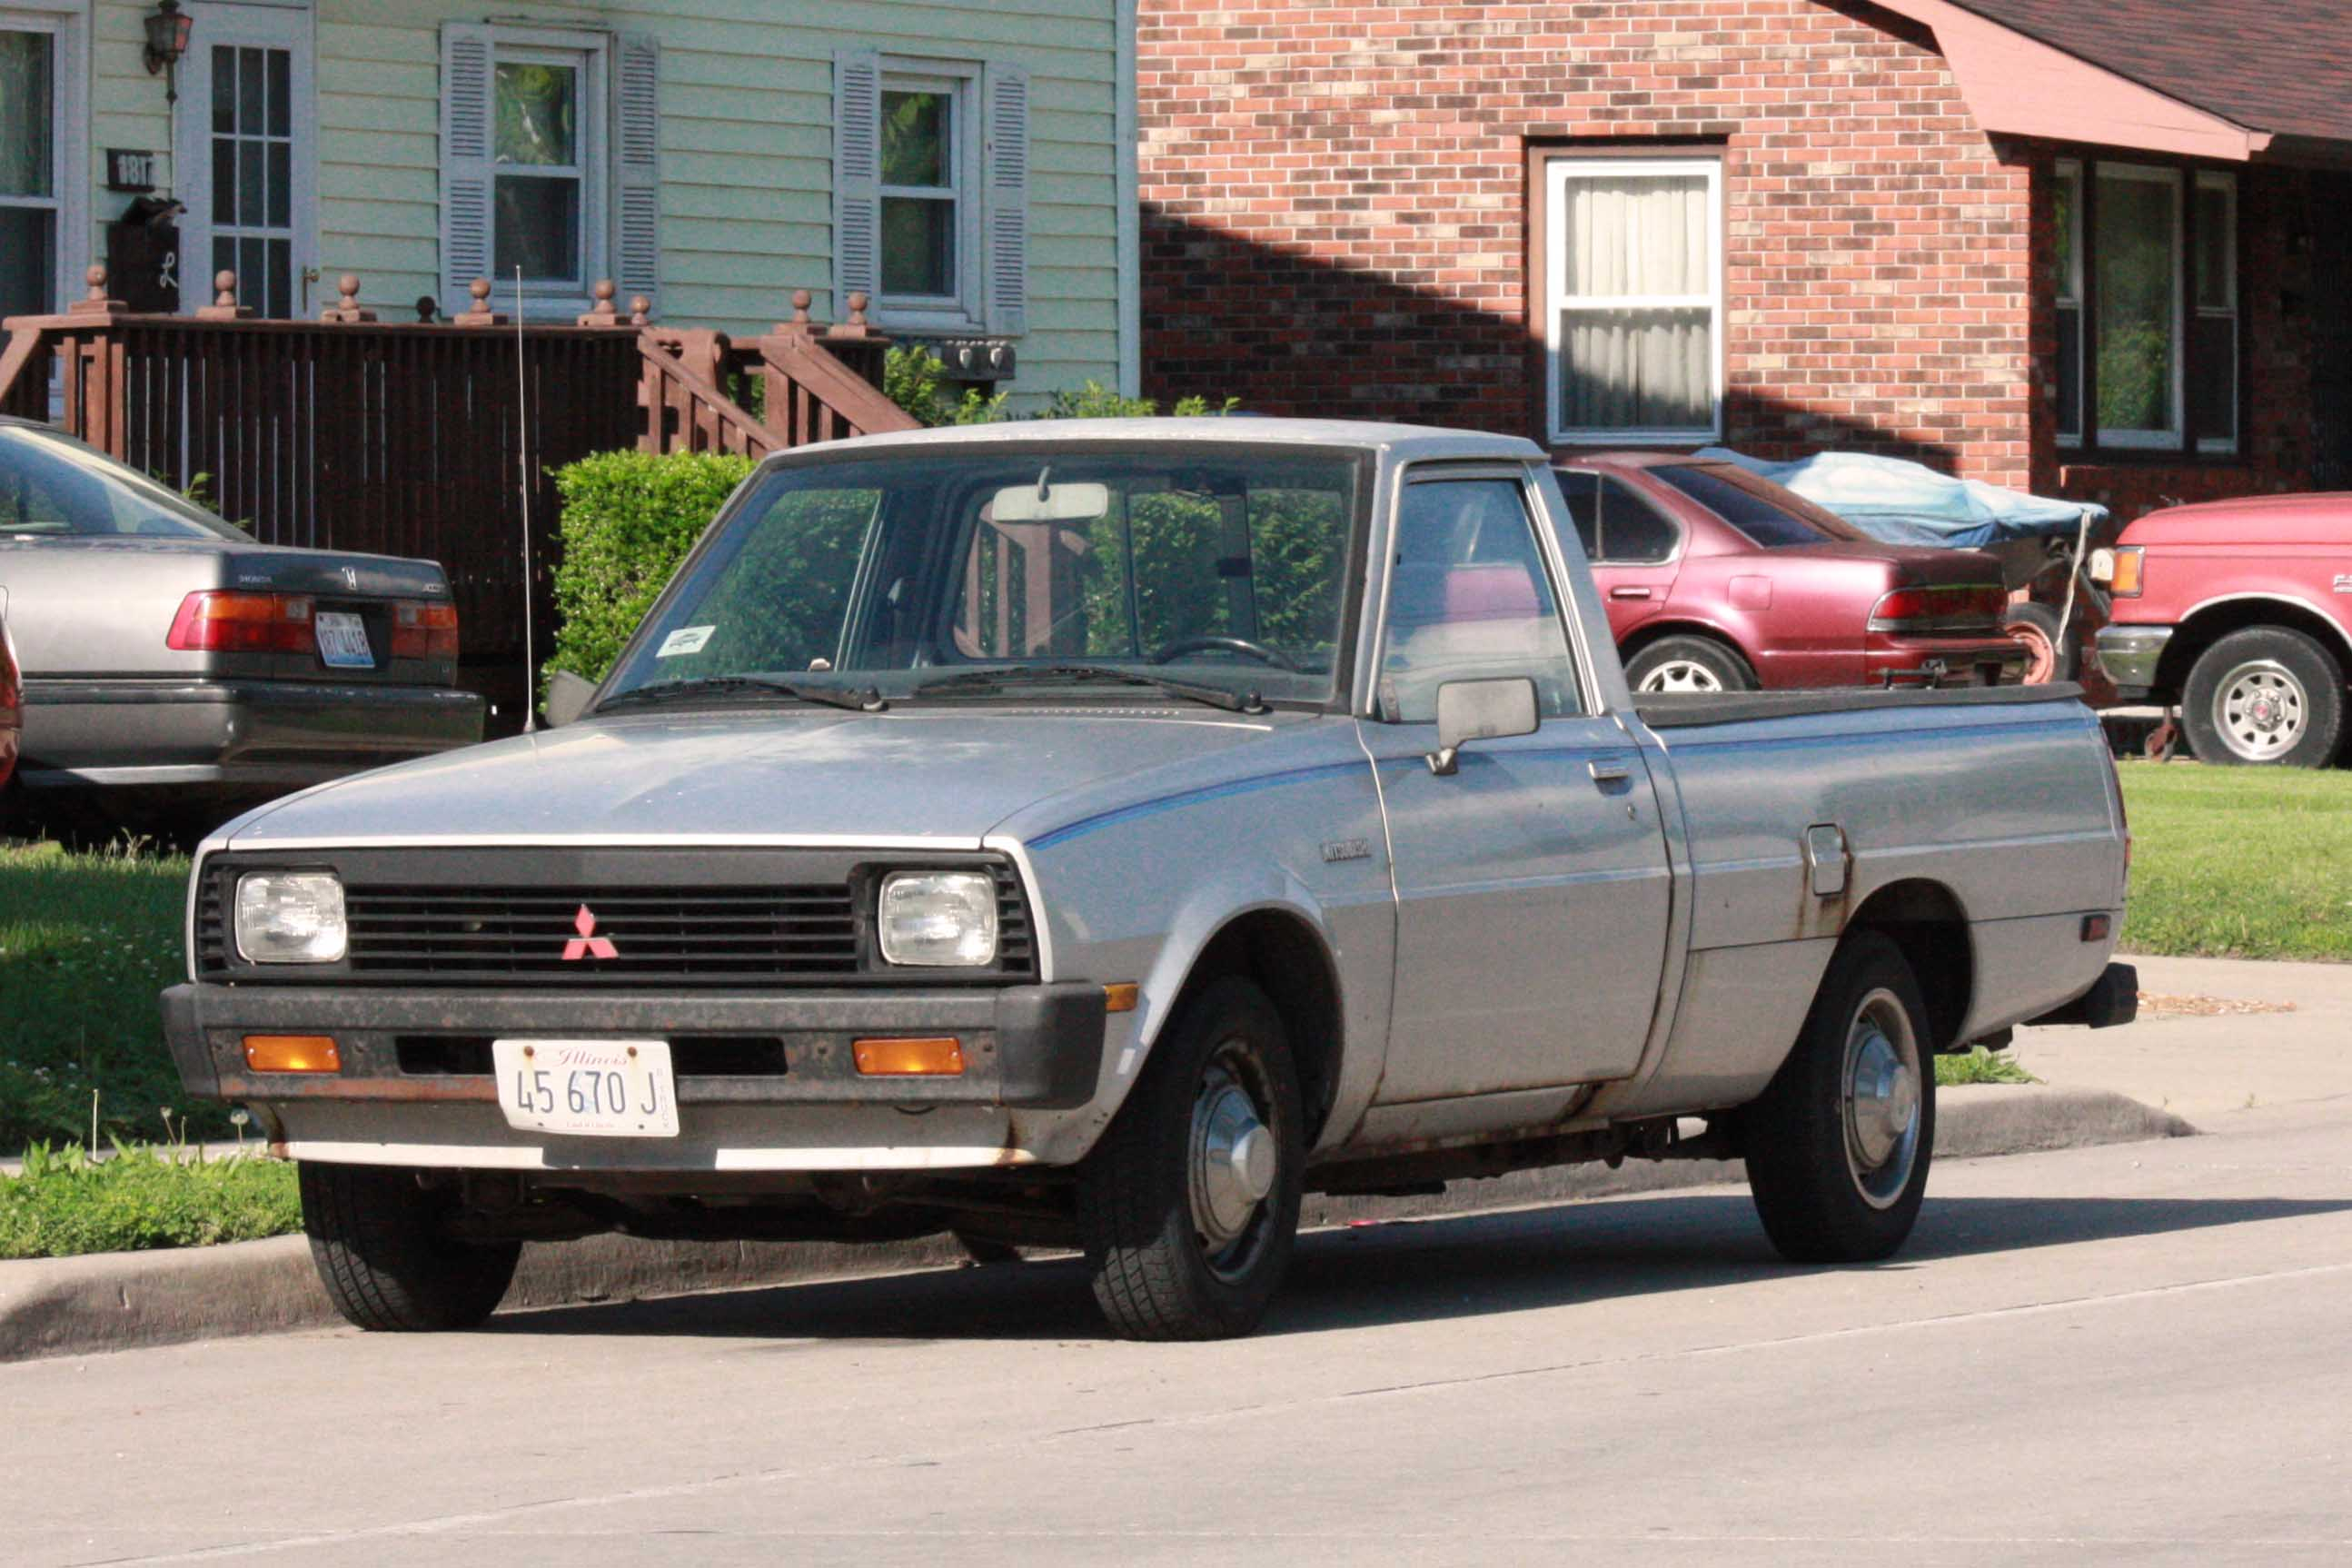 moreover 1978 Dodge 440 Wiring Diagram   Wiring Diagrams in addition  furthermore Can I get a wiring schematic and voltage ohm specs for a 1979 Power together with 1950 Dodge B2b Truck Wiring Diagram   Wiring Diagram • also 1977 Dodge Truck Wiring Harness   Wiring Diagram additionally 1985 Dodge Truck Ignition Wiring Diagram   DIY Wiring Diagrams • together with Catalog additionally Dodge Truck Wiring Schematics   Wiring Source • further 69 Dodge Truck Wiring Diagram   Wiring Liry besides Truck Dodge Wiring Diagram 1969   Ex le Electrical Wiring Diagram as well  moreover M37 Wiring Diagram   WIRE Center • moreover  likewise Fancy 1978 Dodge Pu Wiring Schematic Pattern   Electrical and Wiring in addition 85 Chevy Truck Wiring Diagram   Chevrolet Truck V8 1981 1987. on 1977 dodge truck wiring